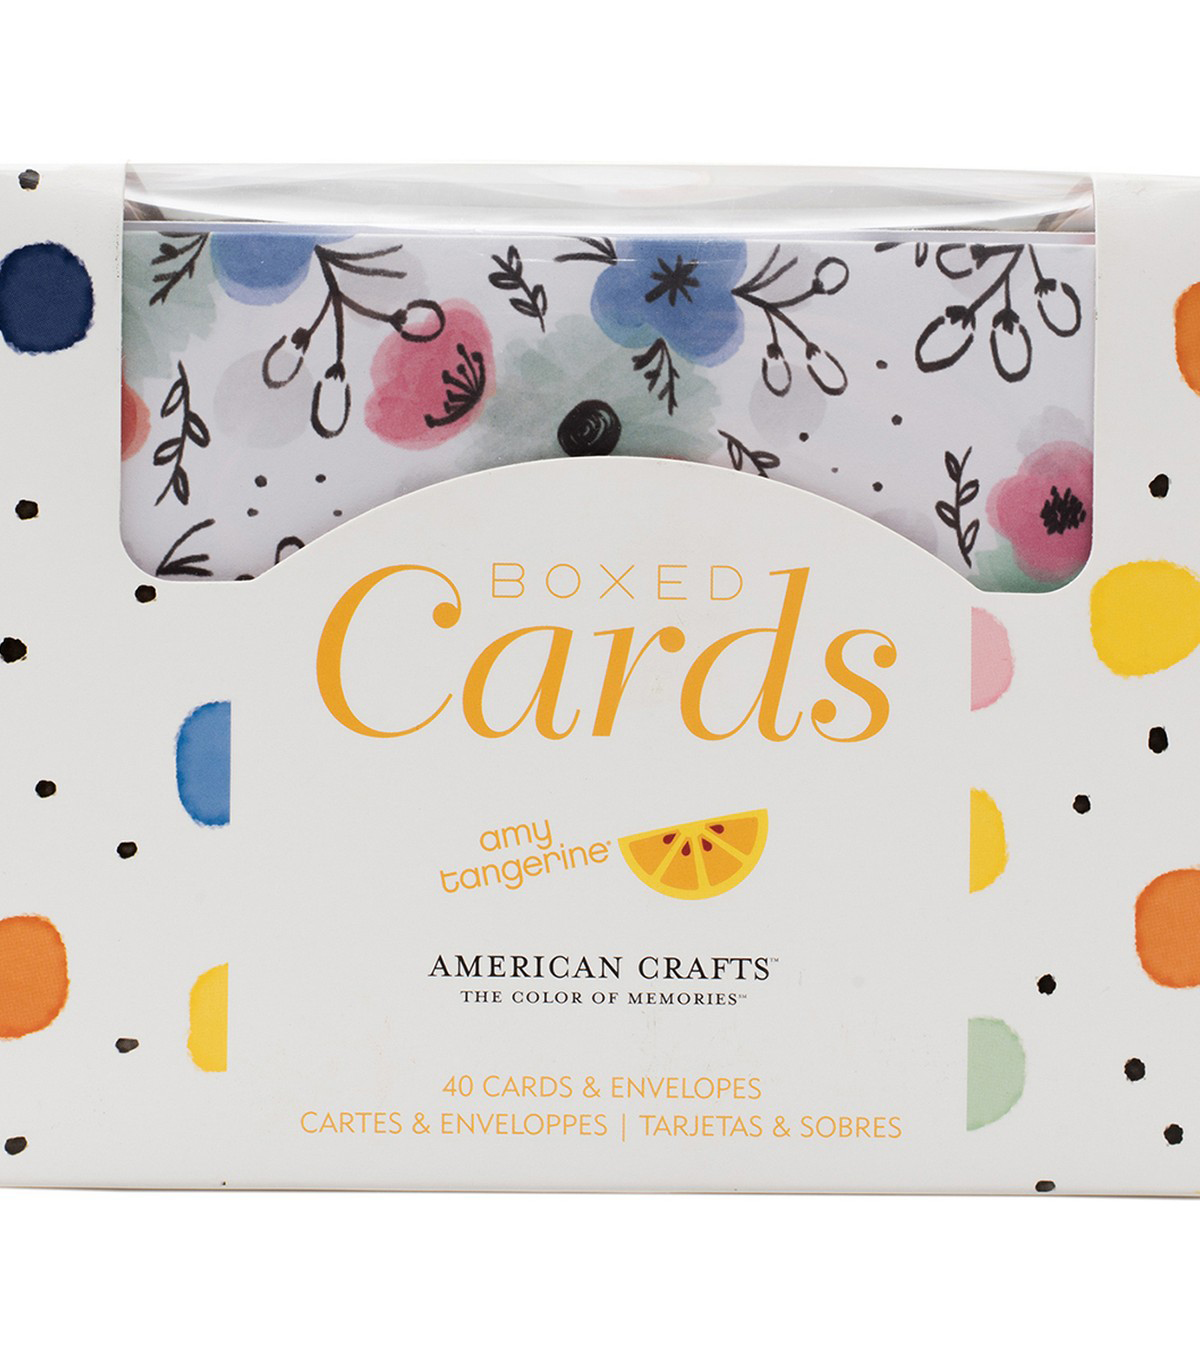 American Crafts Amy Tangerine Finders Keepers A2 Boxed Cards & Envelopes